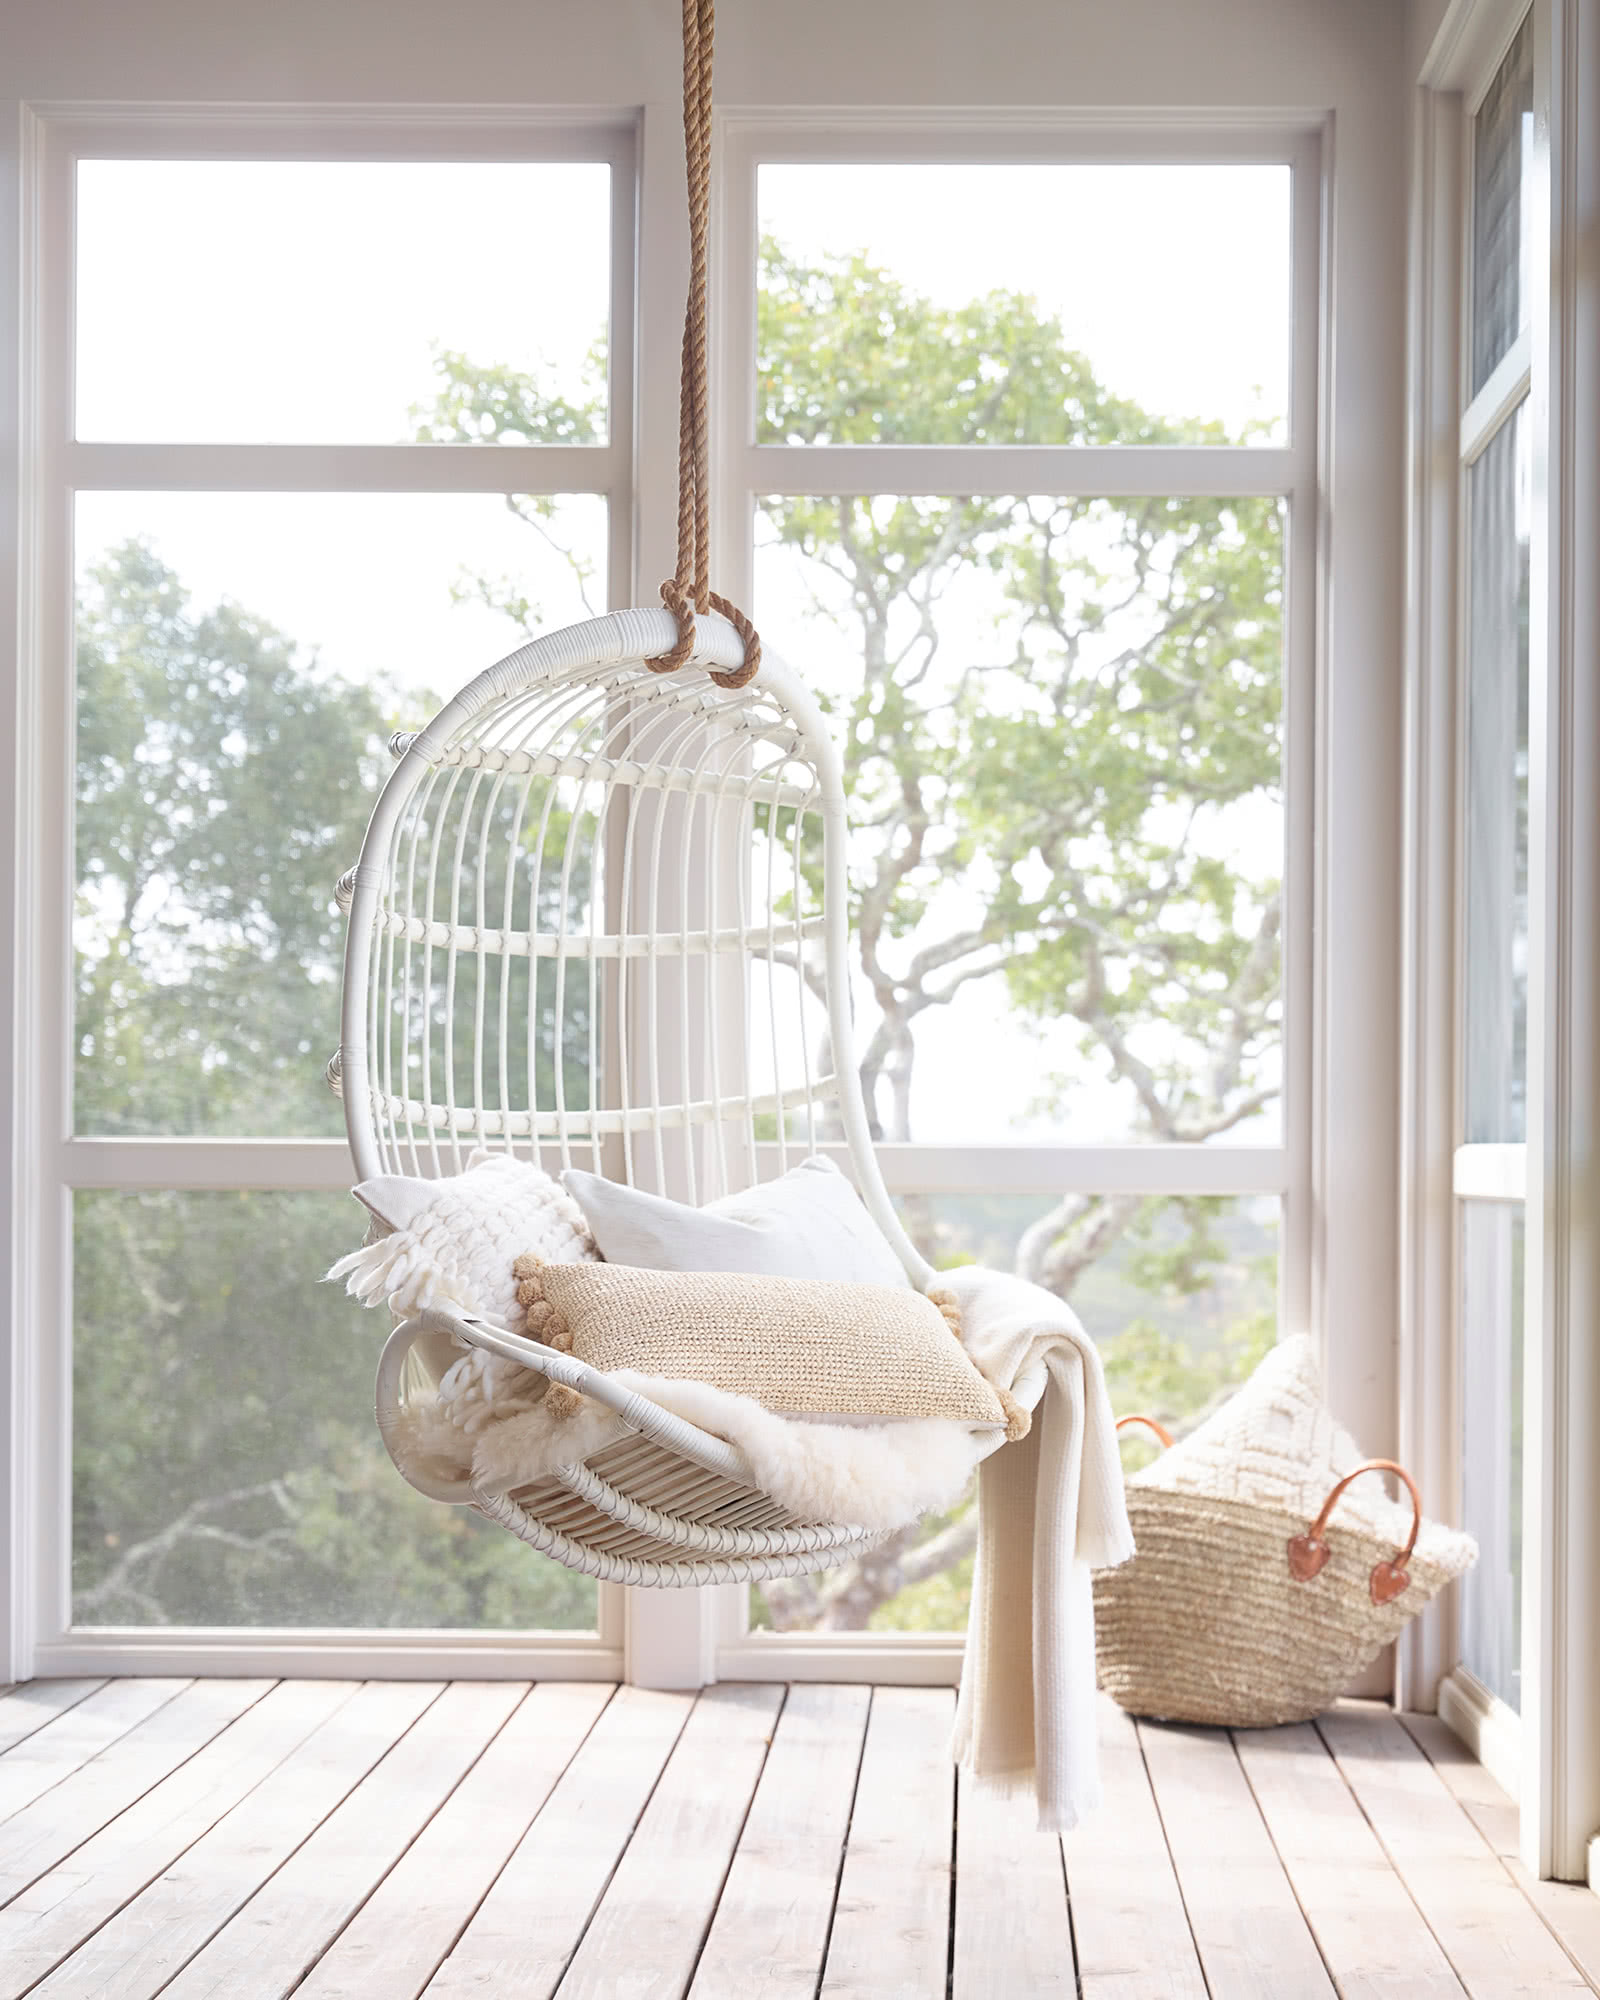 White hanging chair - Serena & Lily